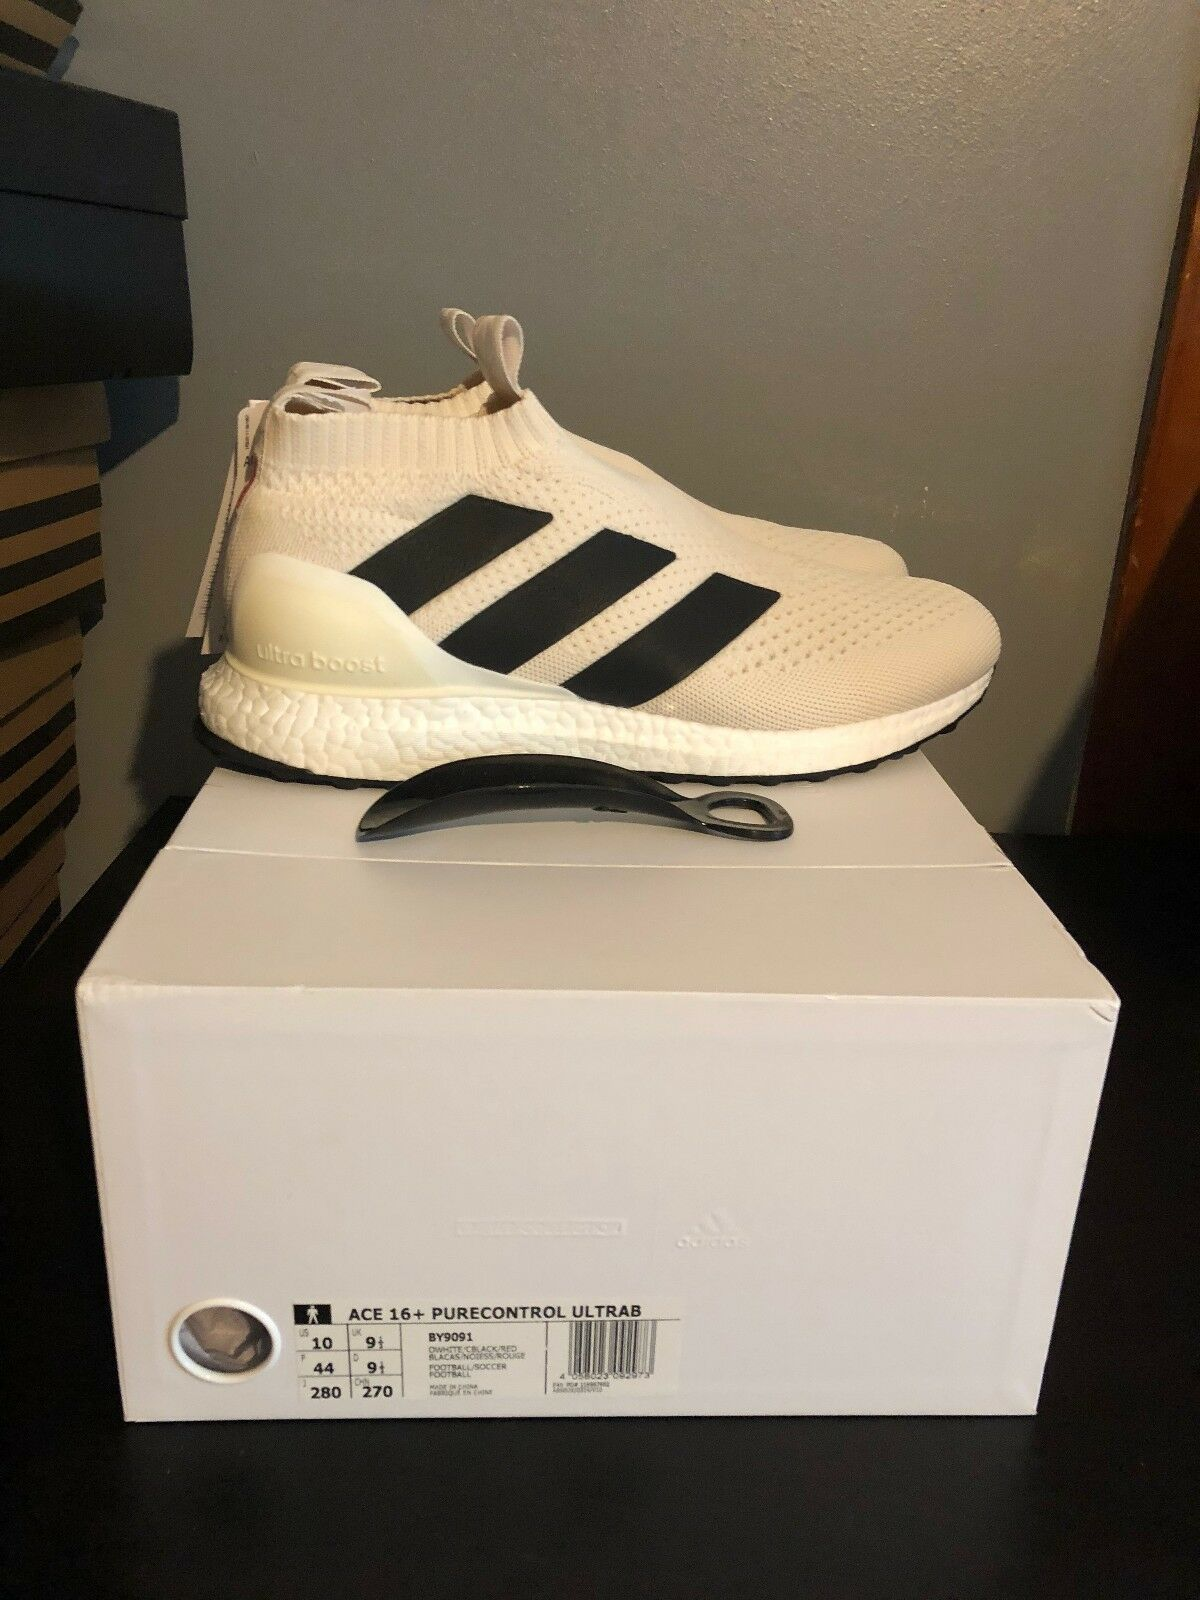 ADIDAS ACE 16+ PURECONTROL ULTRABOOST CHAMPAGNE SZ 10 BY9091 BECKHAM MANIA WHITE